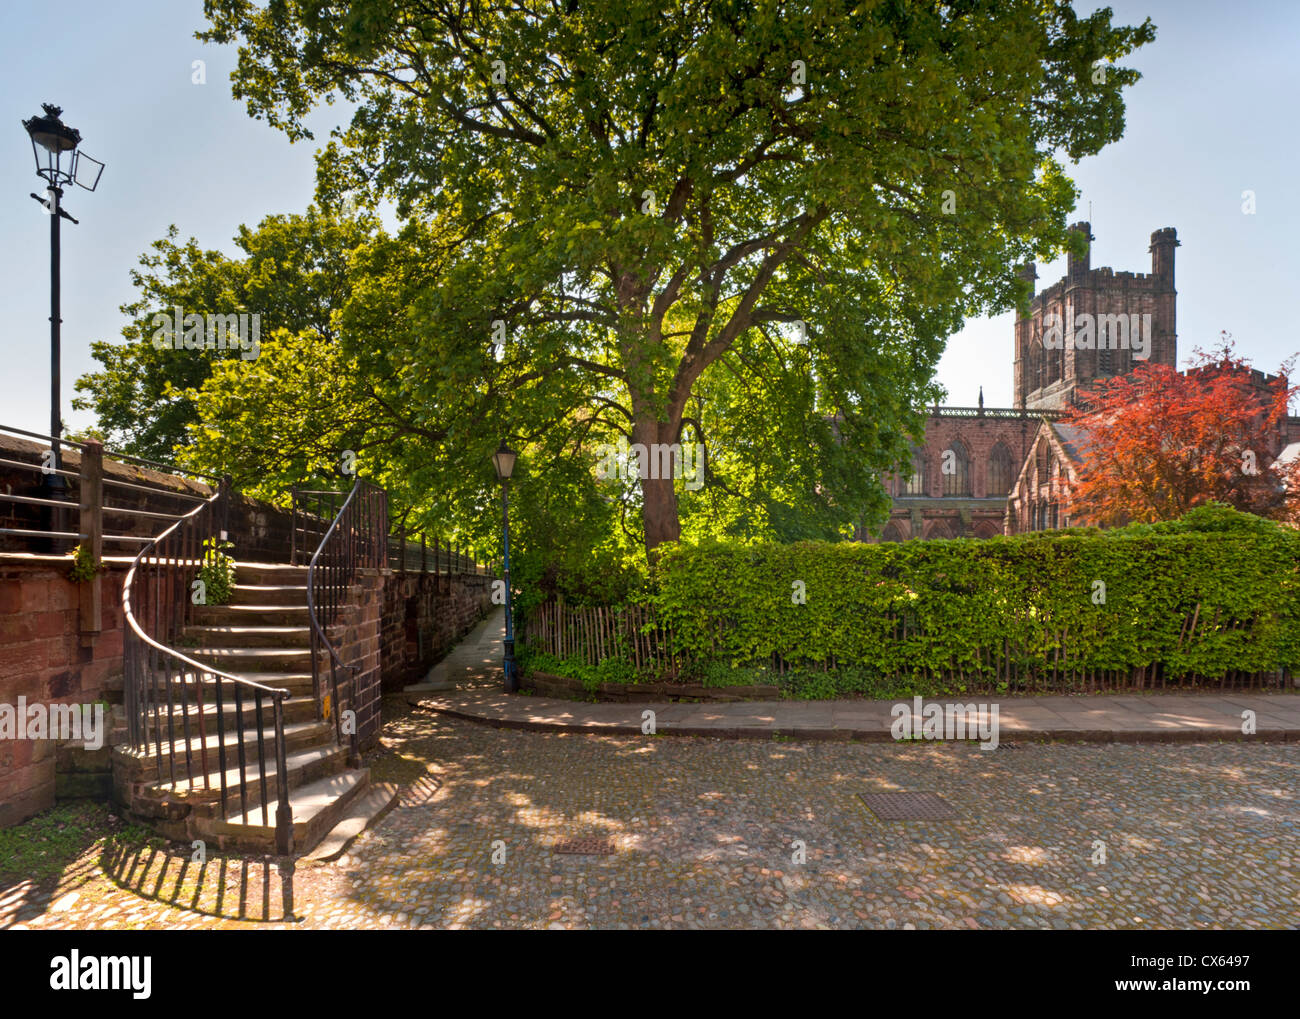 Chester Cathedral & The City Walls, Chester, Cheshire, England, UK - Stock Image